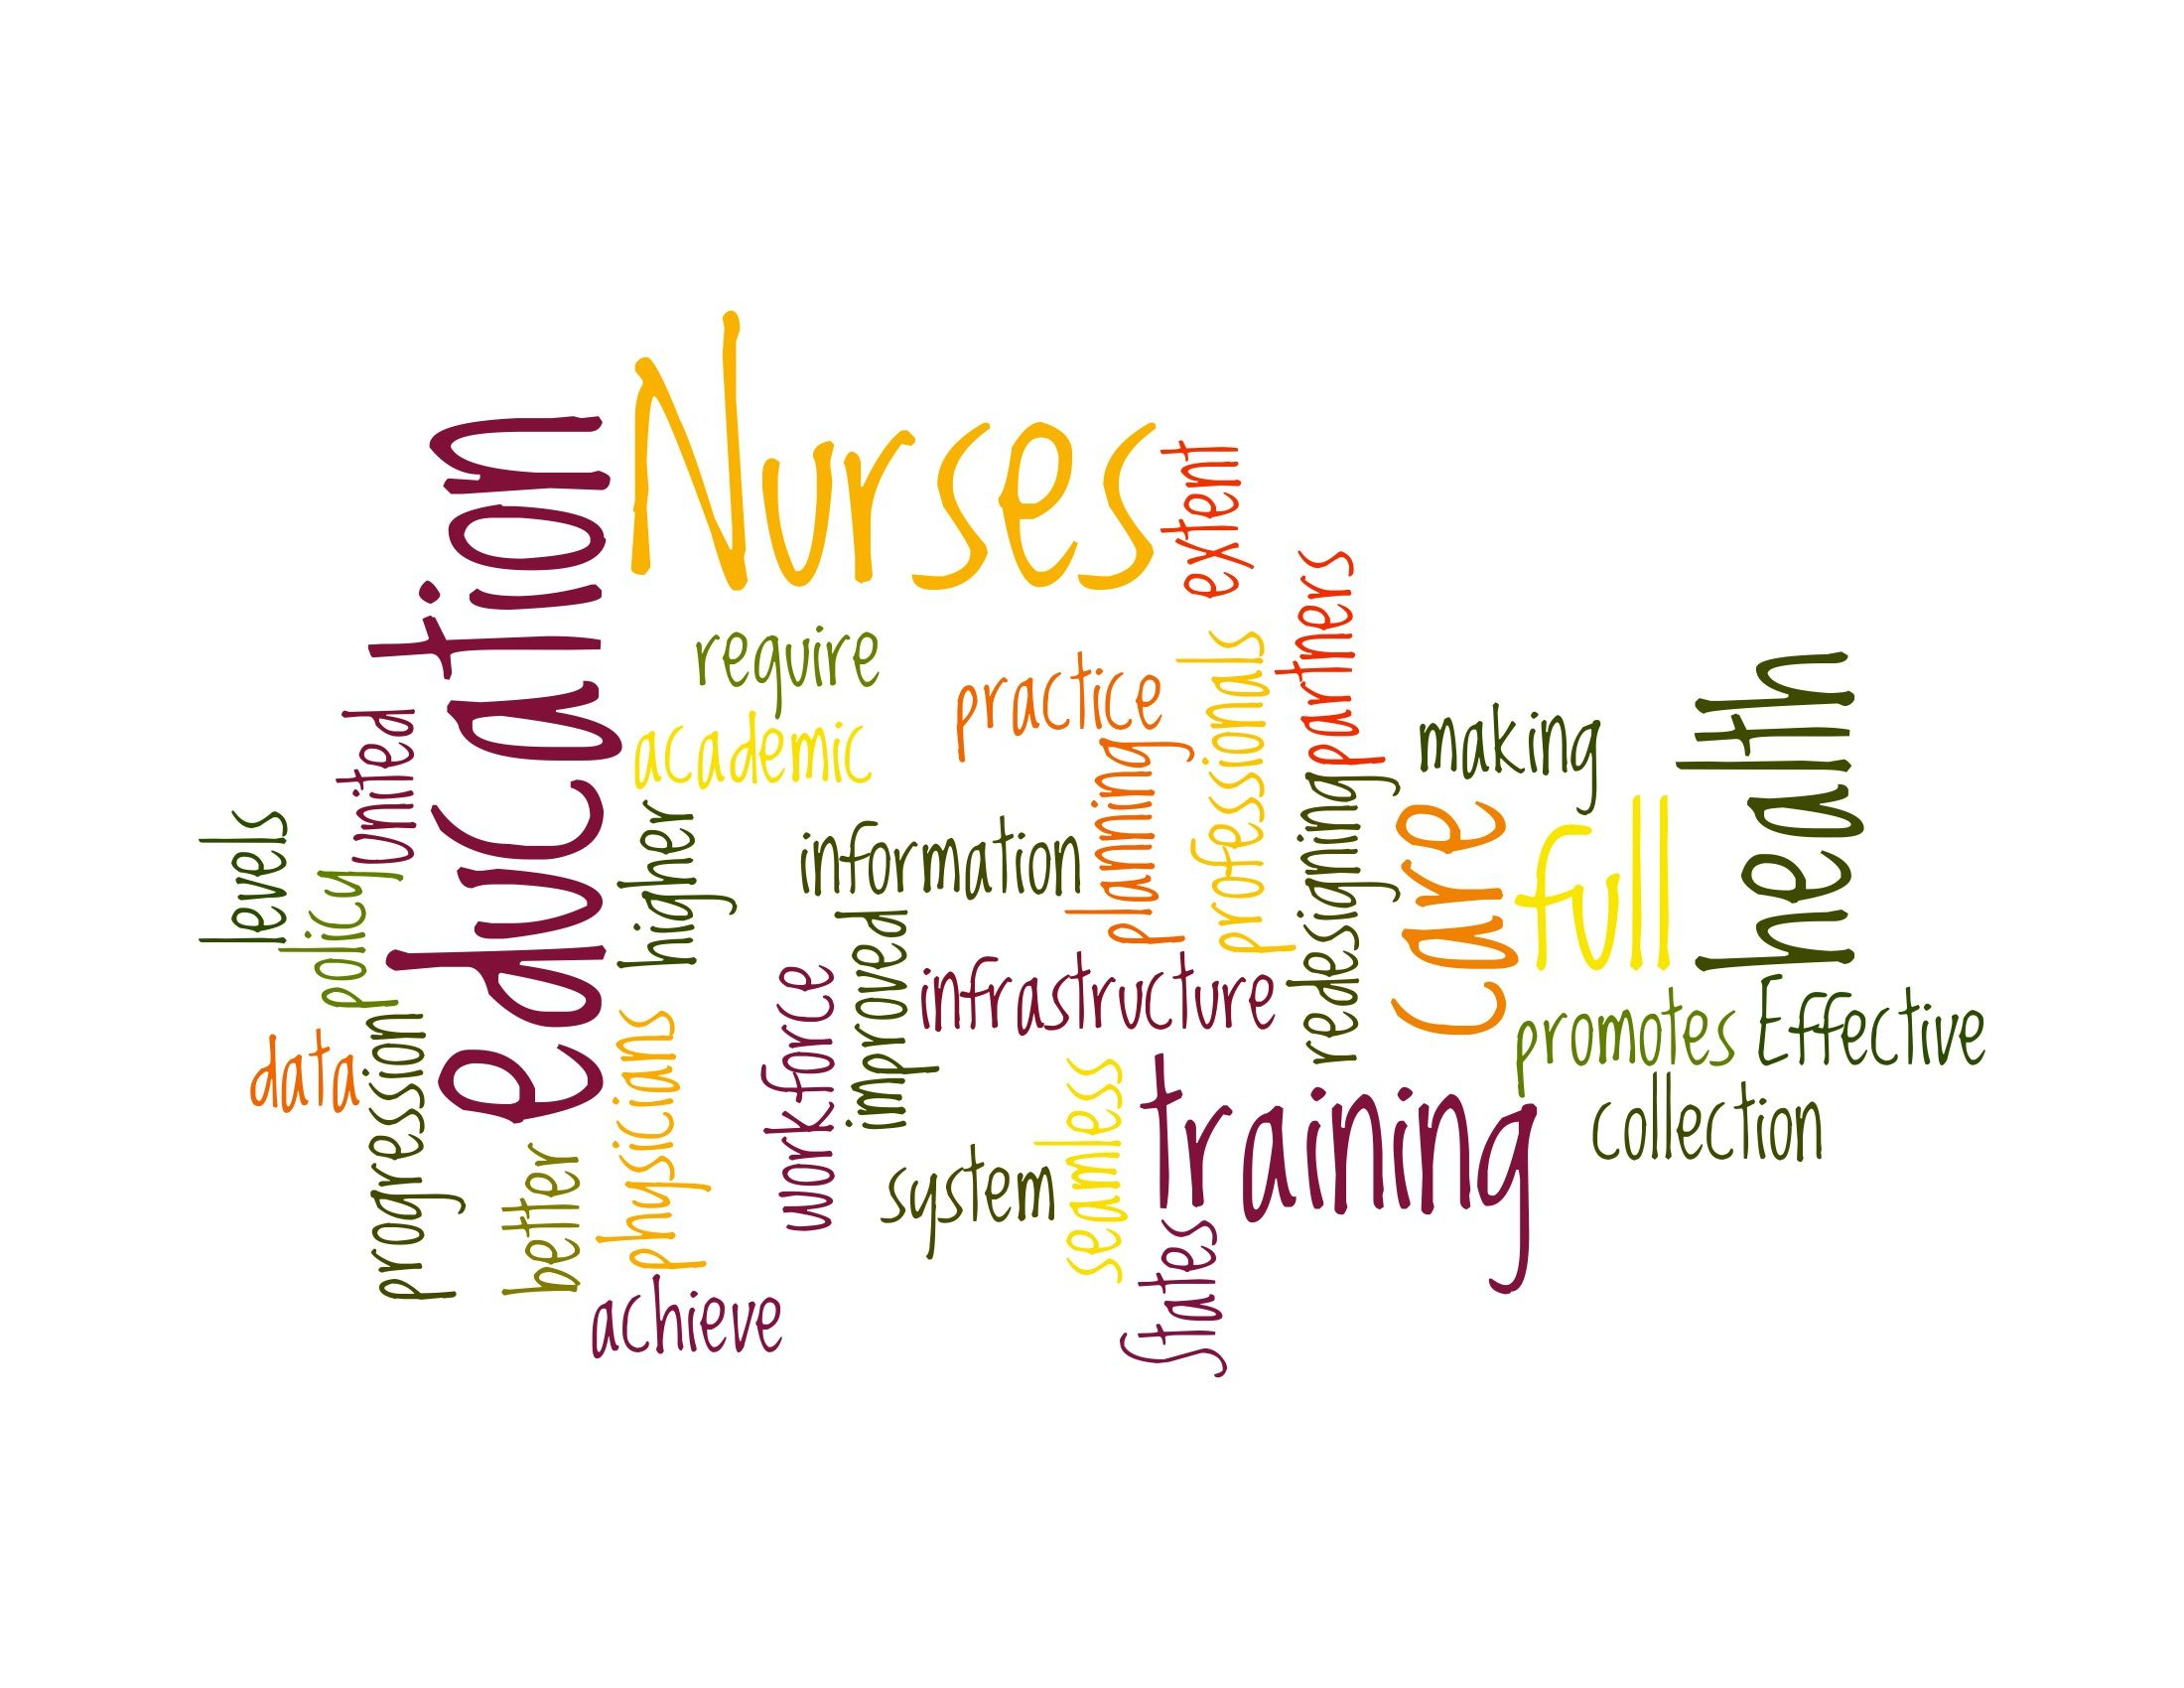 Patient Safety For Nursing Students